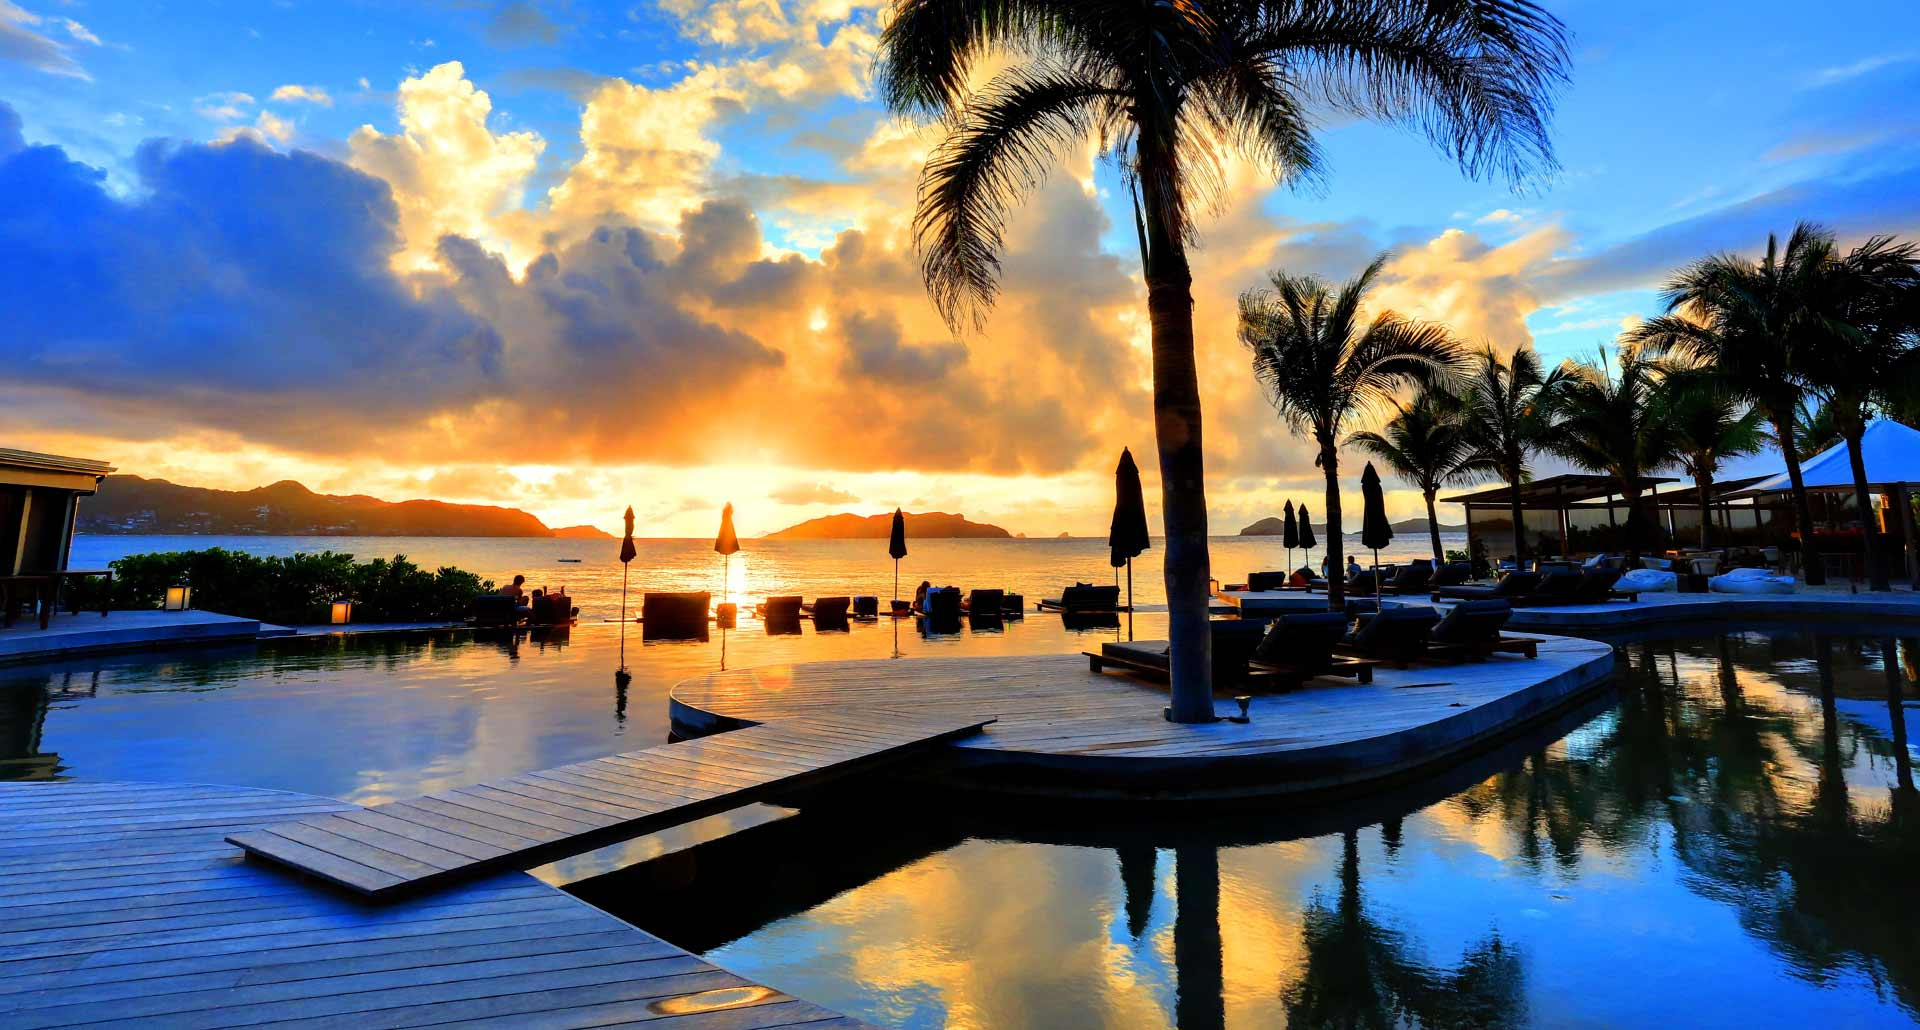 Hotel Christopher - best hotel pool in St Barts